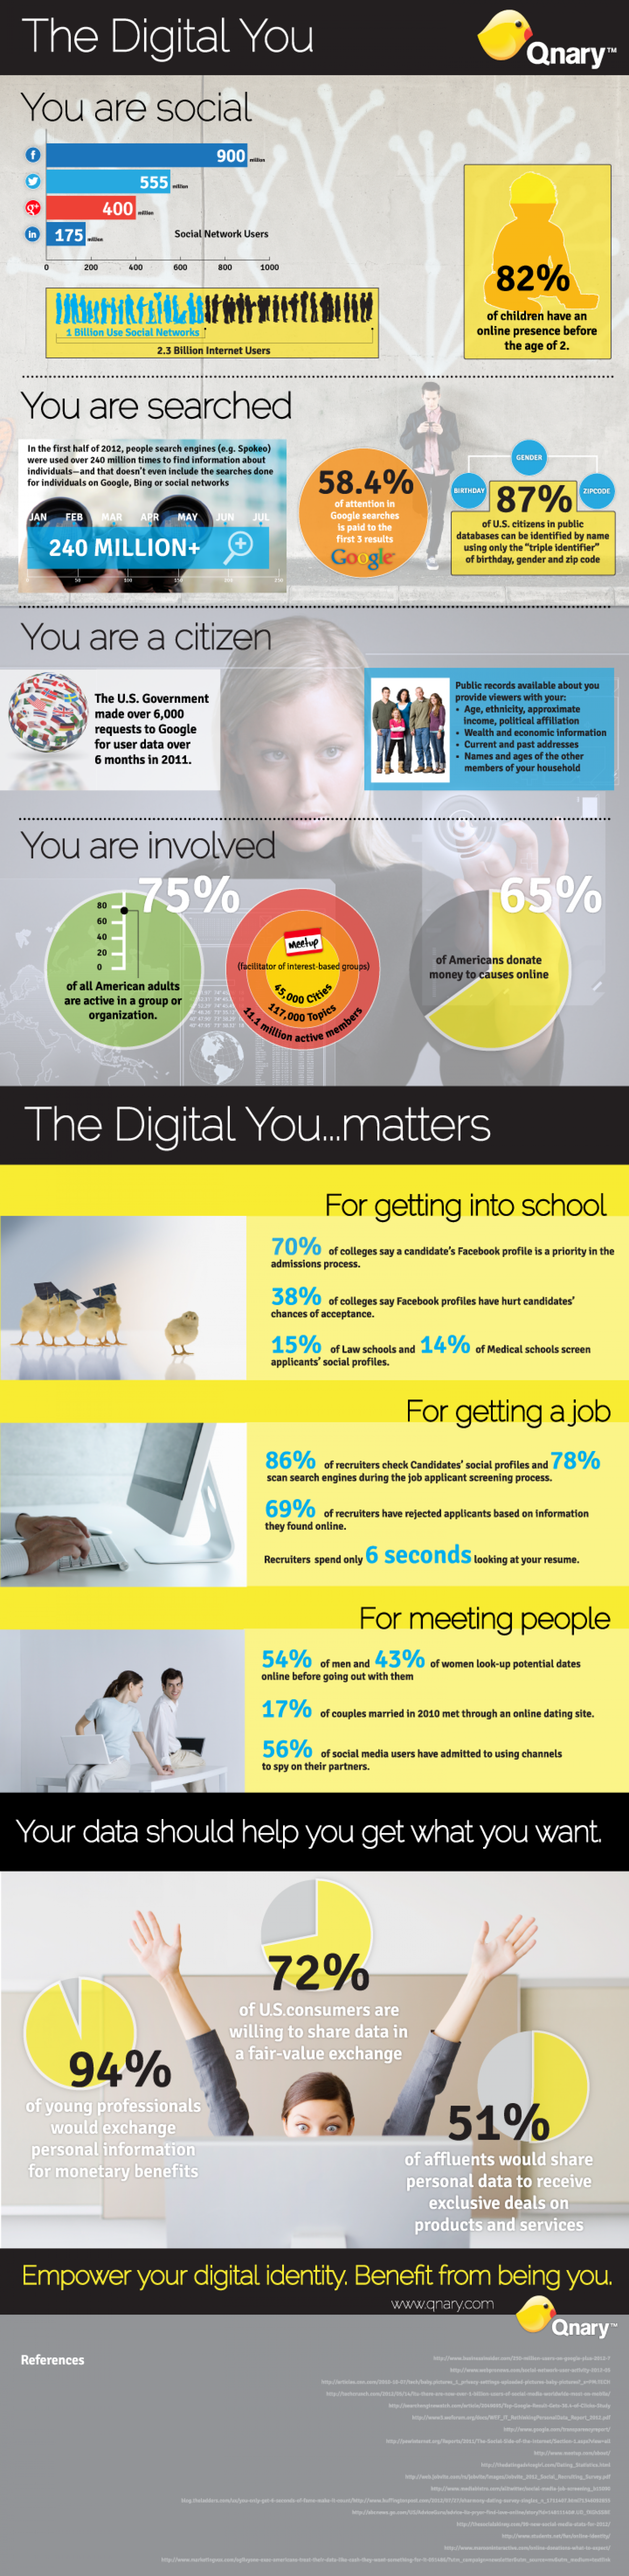 The Digital You Matters: Identity in the Internet Age Infographic